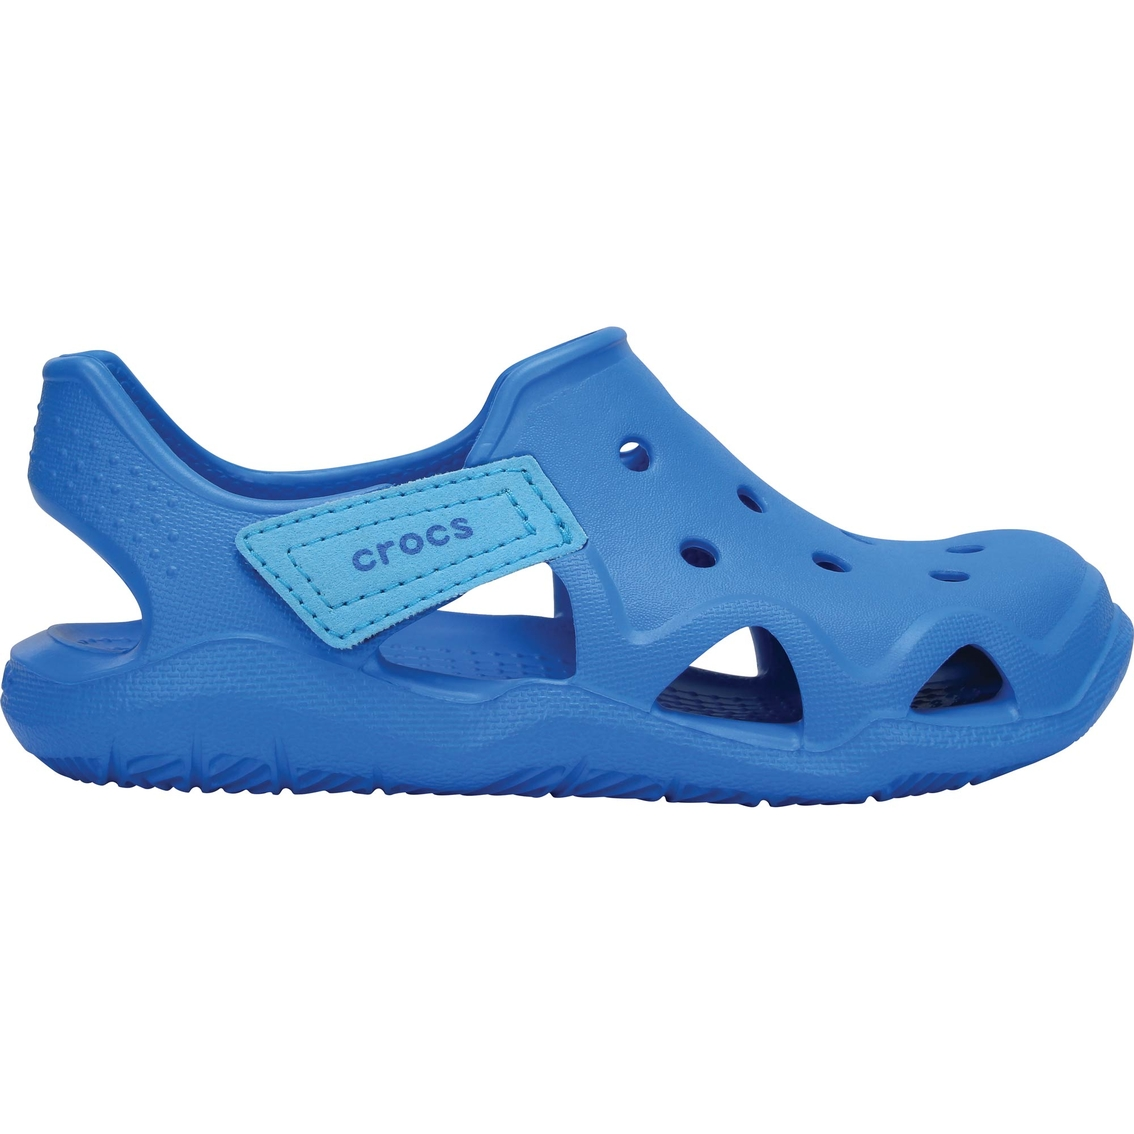 8d1d69b04a54 Crocs Boys Swiftwater Wave Sandals